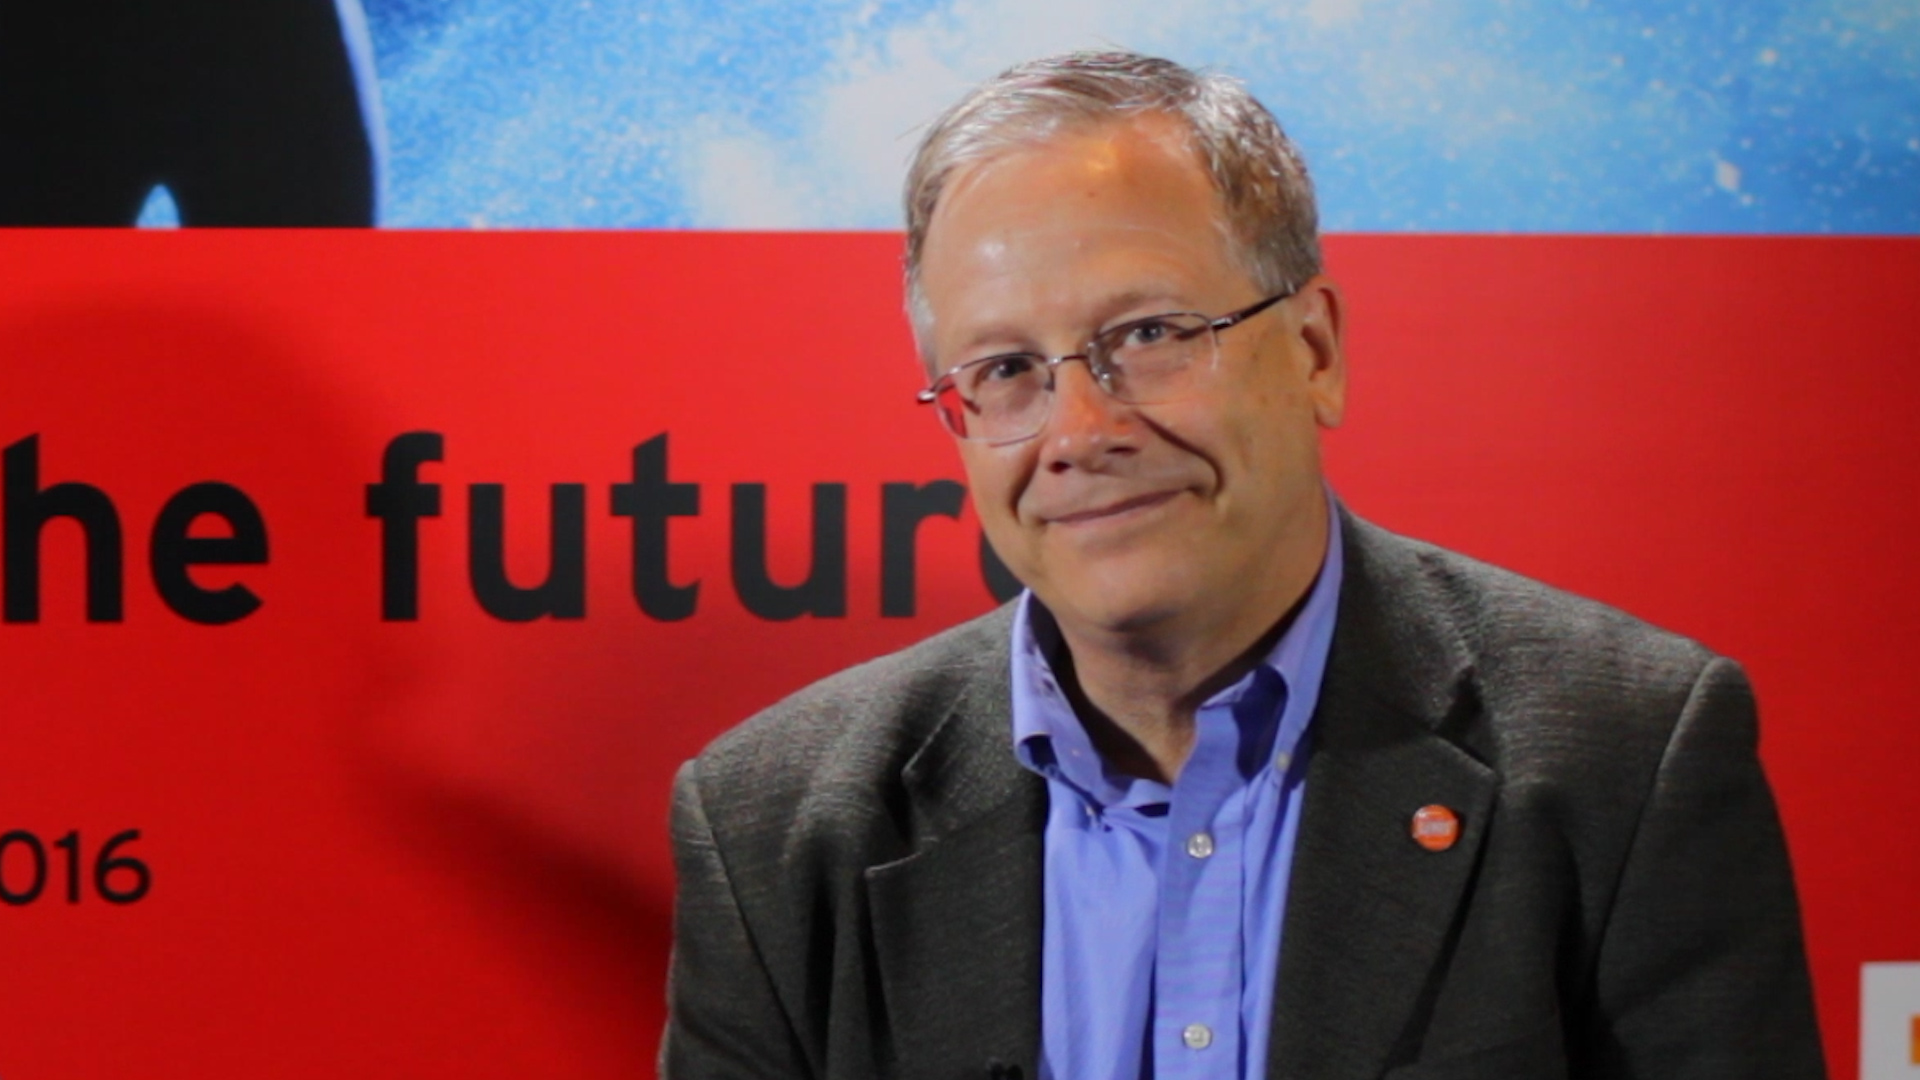 drupa 2016: The experience of a lifetime